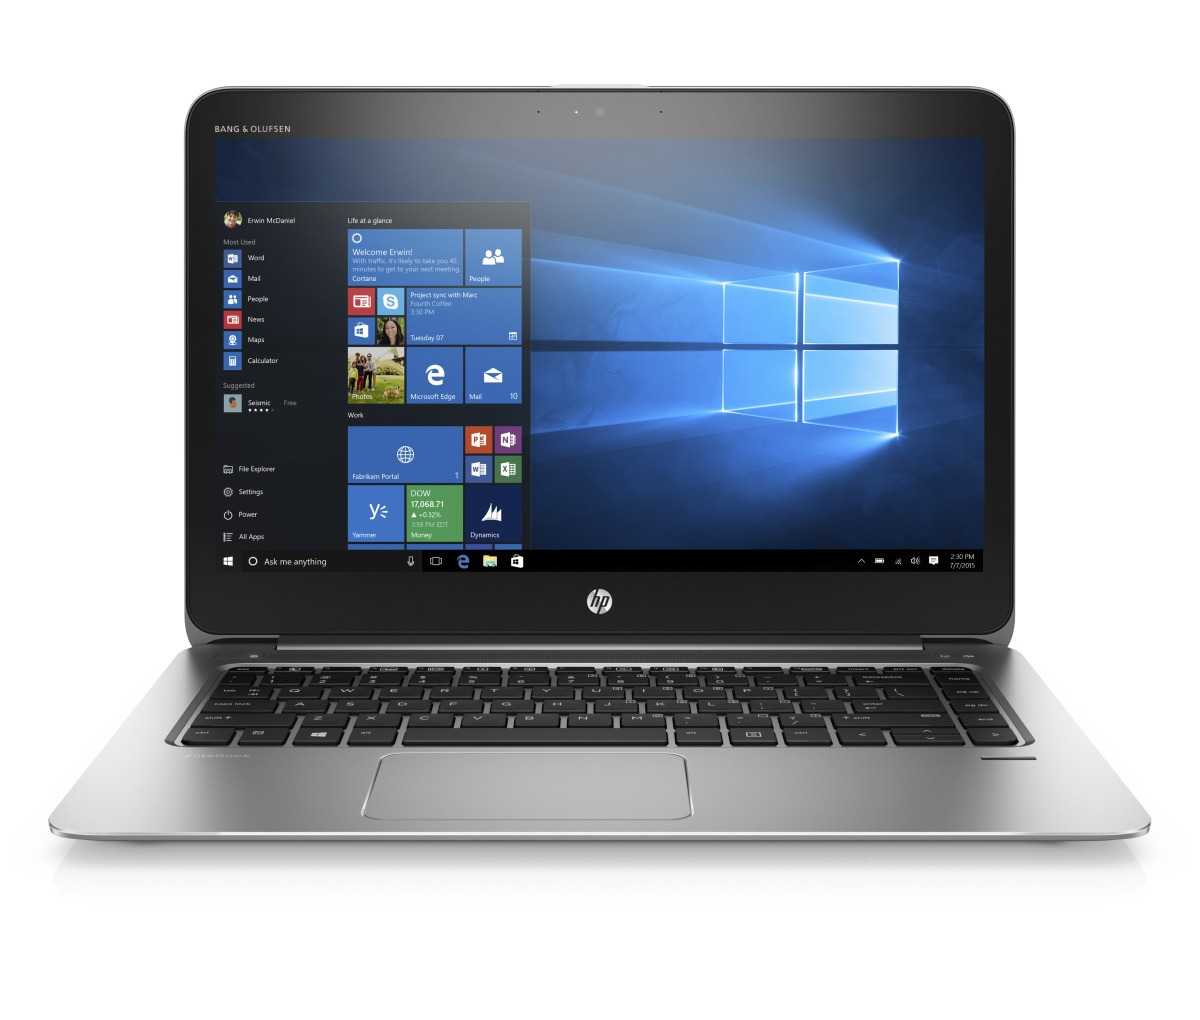 HP EliteBook Folio 1040 G3 i7-6500U /8 GB/256GB SSD/14'' FHD/backlit keyb, NFC, RJ45-VGA adapt / Win 10 Pro + Win7 Pro